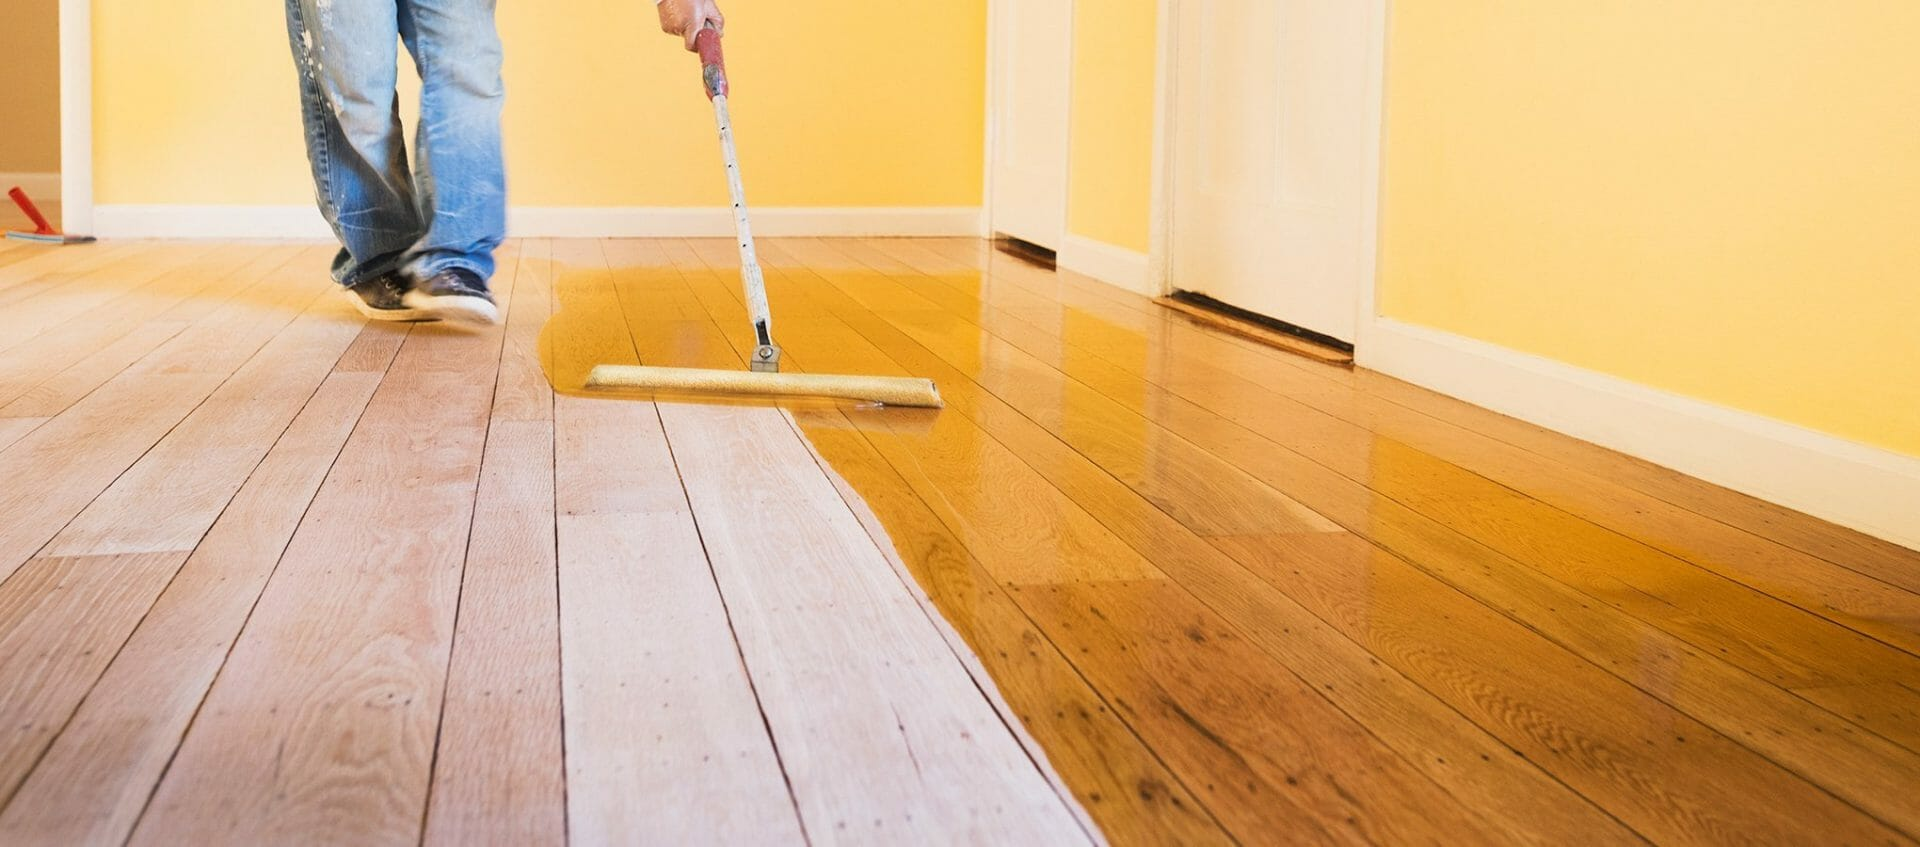 How Important Is It To Seal Wood Flooring